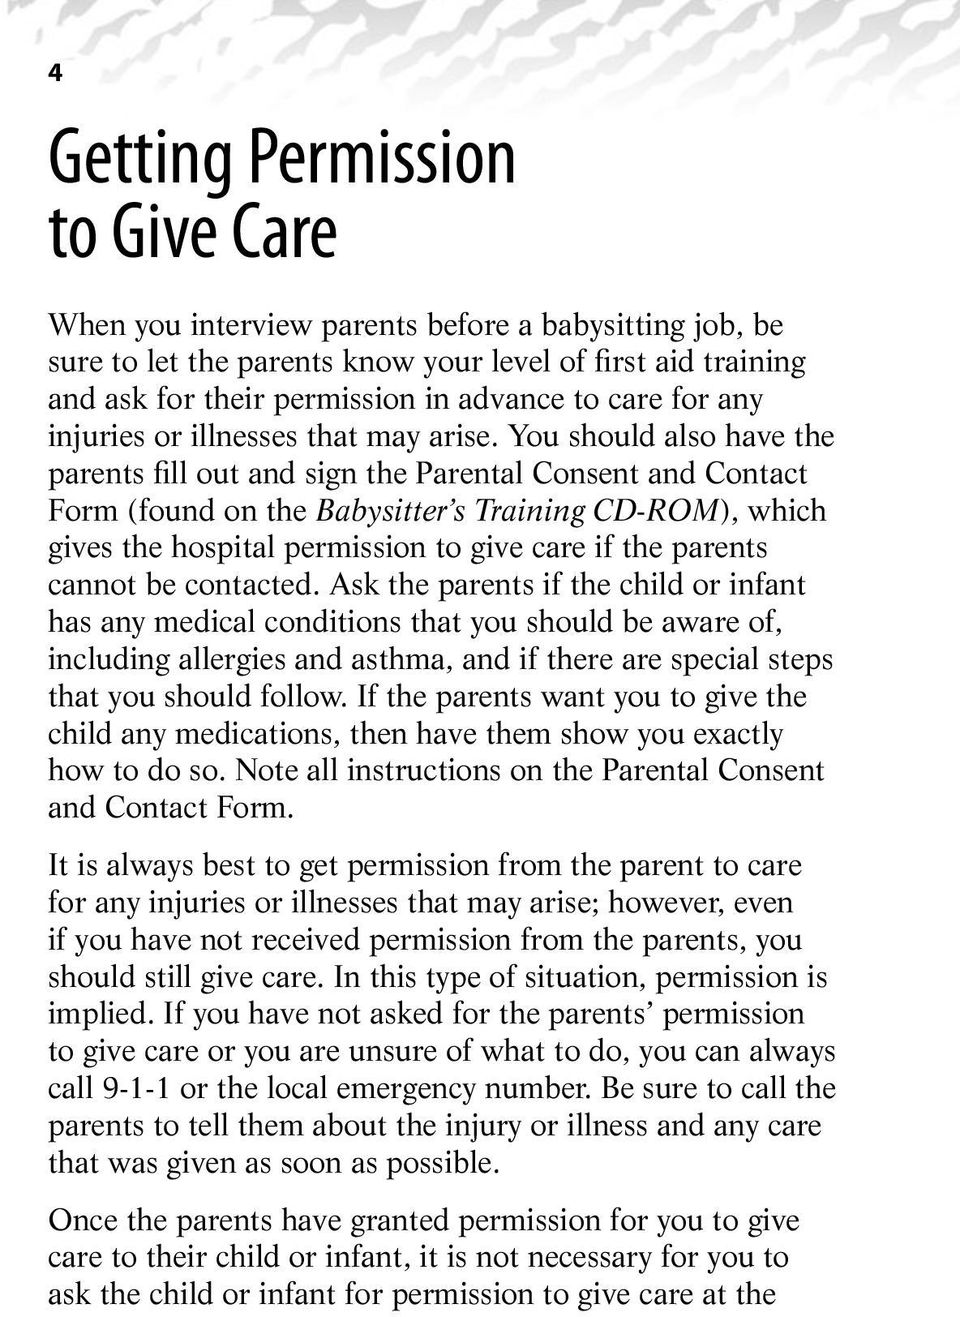 You should also have the parents fill out and sign the Parental Consent and Contact Form (found on the Babysitter s Training CD-ROM), which gives the hospital permission to give care if the parents